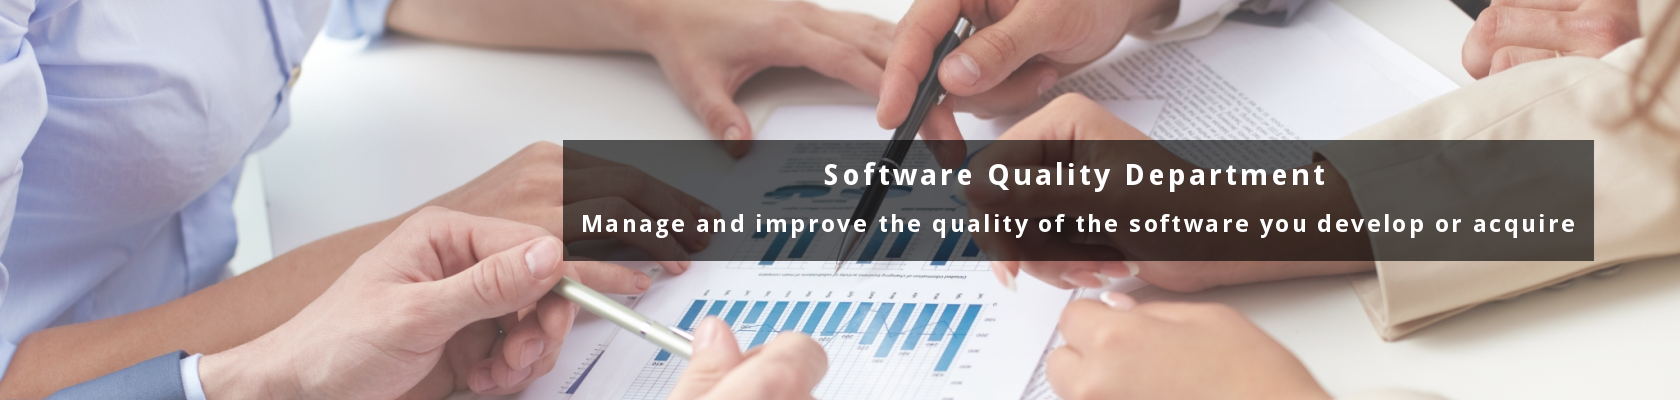 Software Quality Department